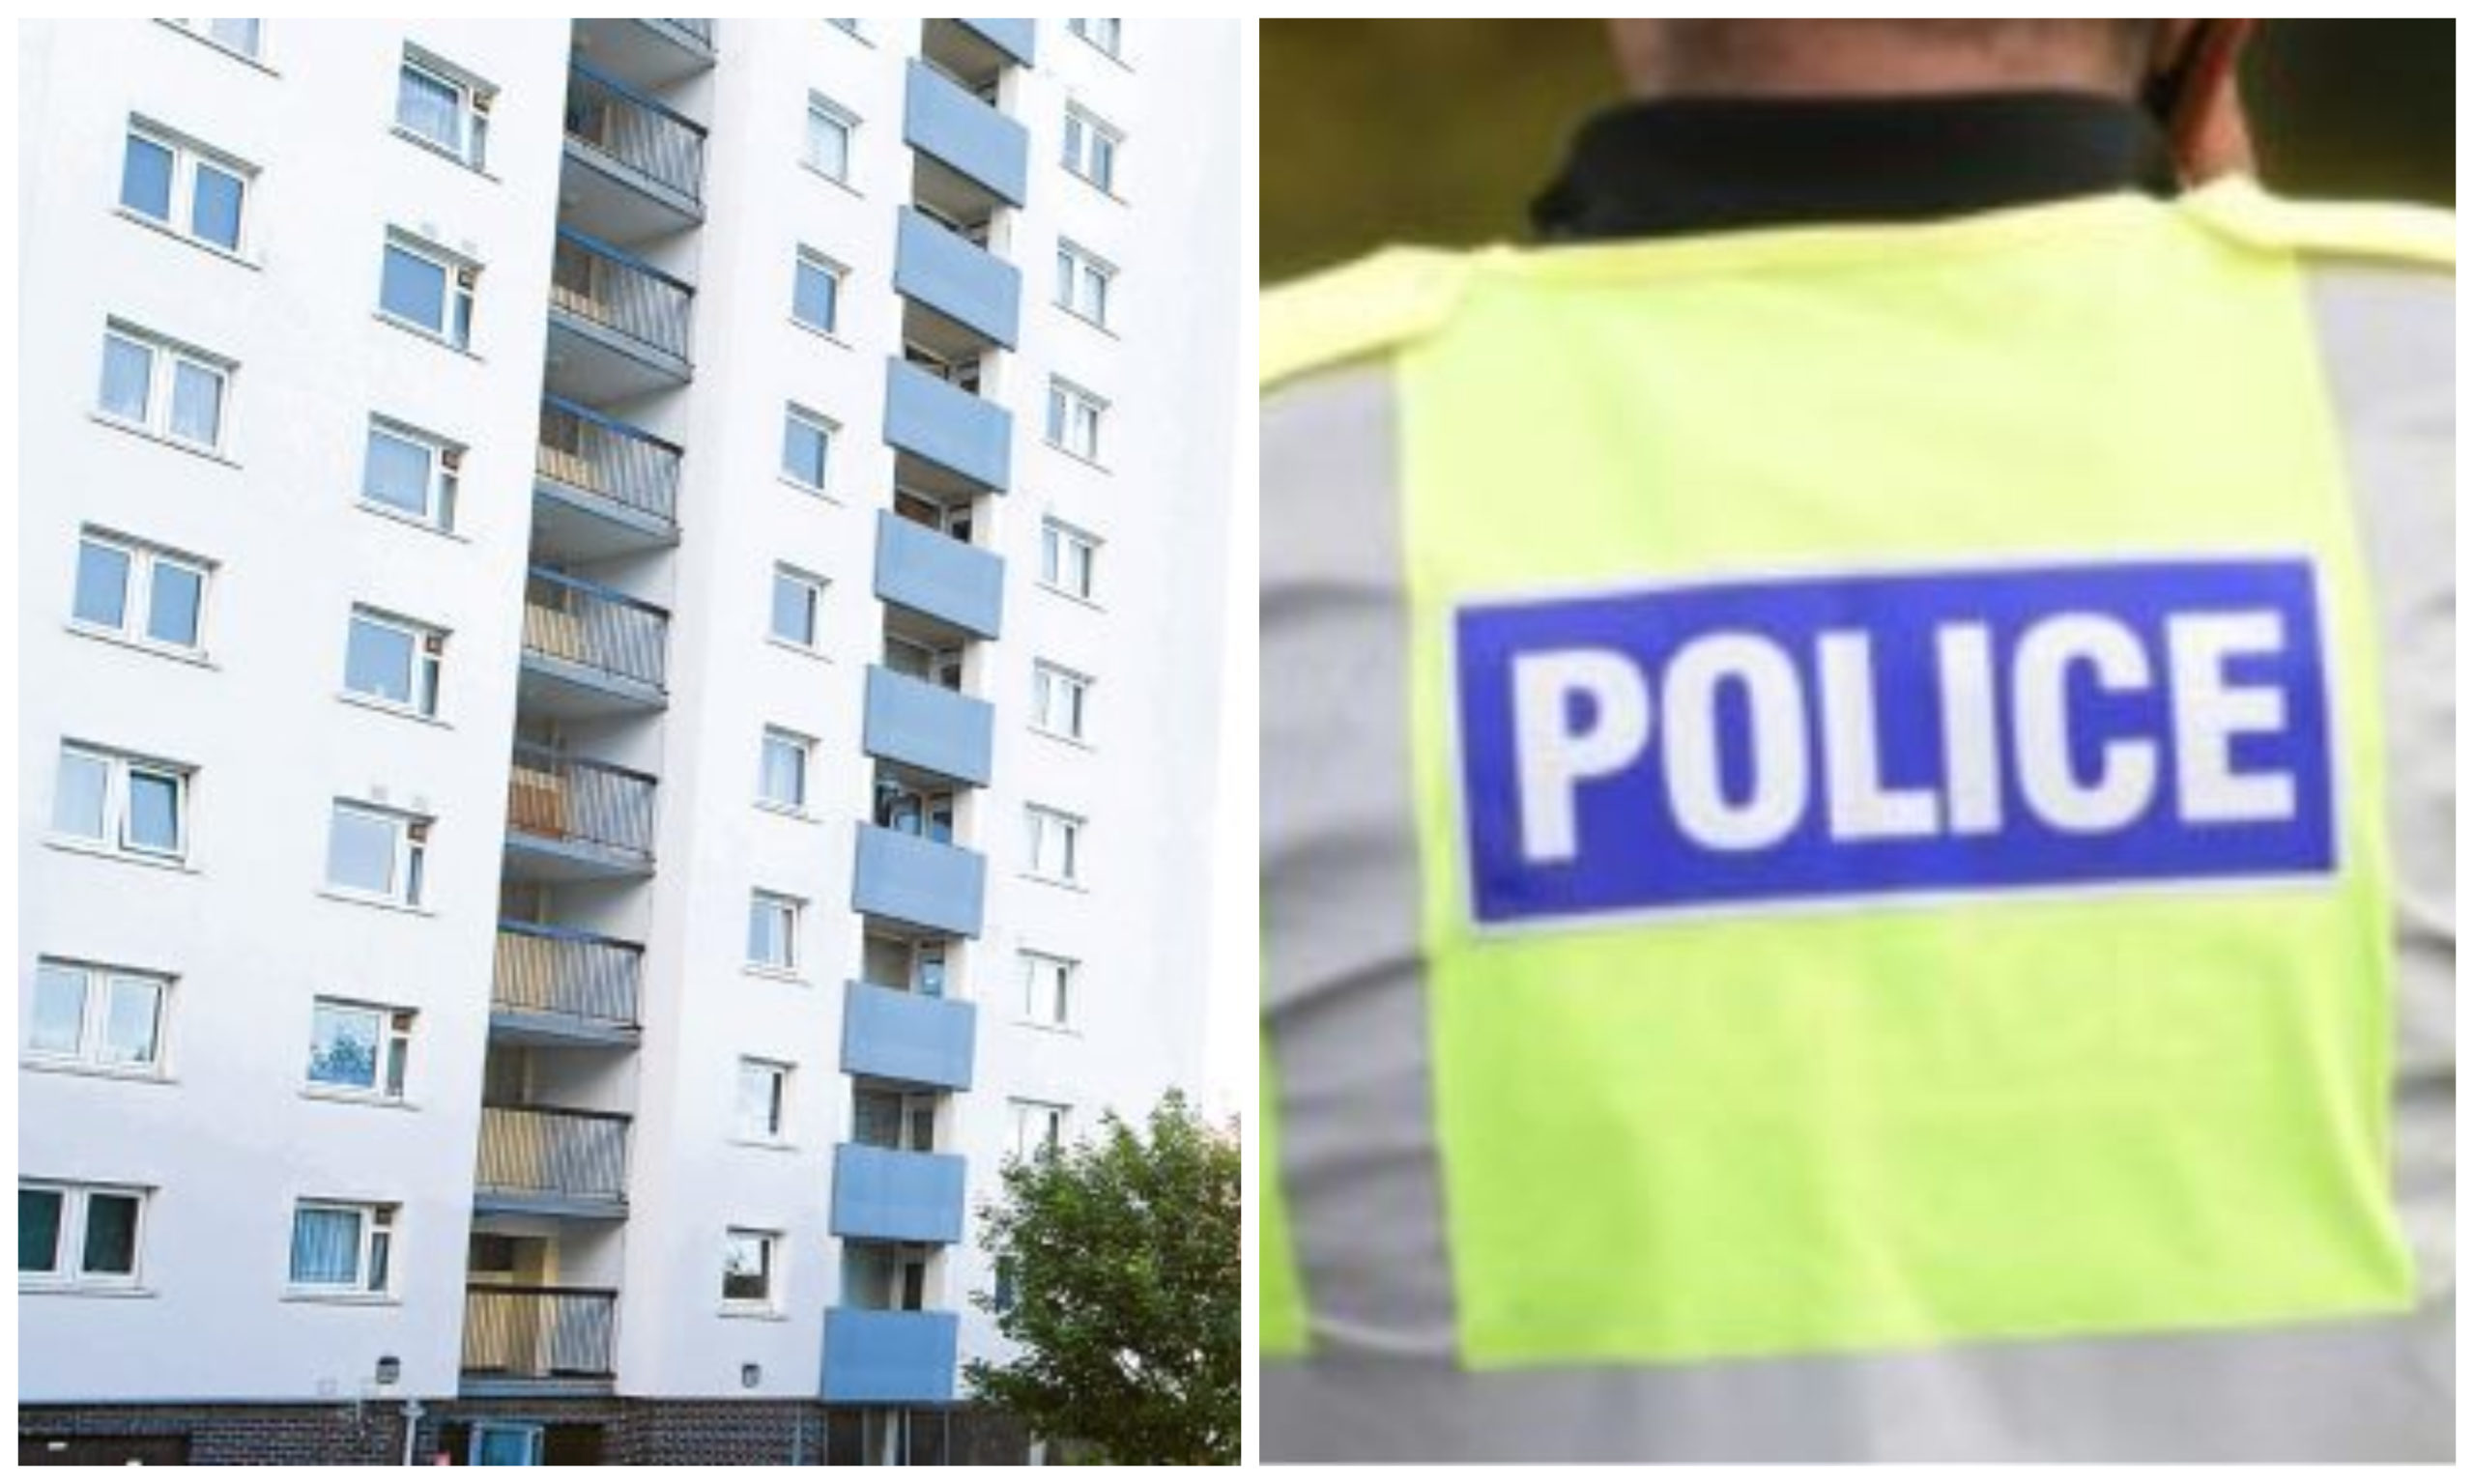 Residents at the Hilltown multis claim people are pretending to be police officers or Royal Mail staff to gain access to the buildings, which they say are rife with drugs.